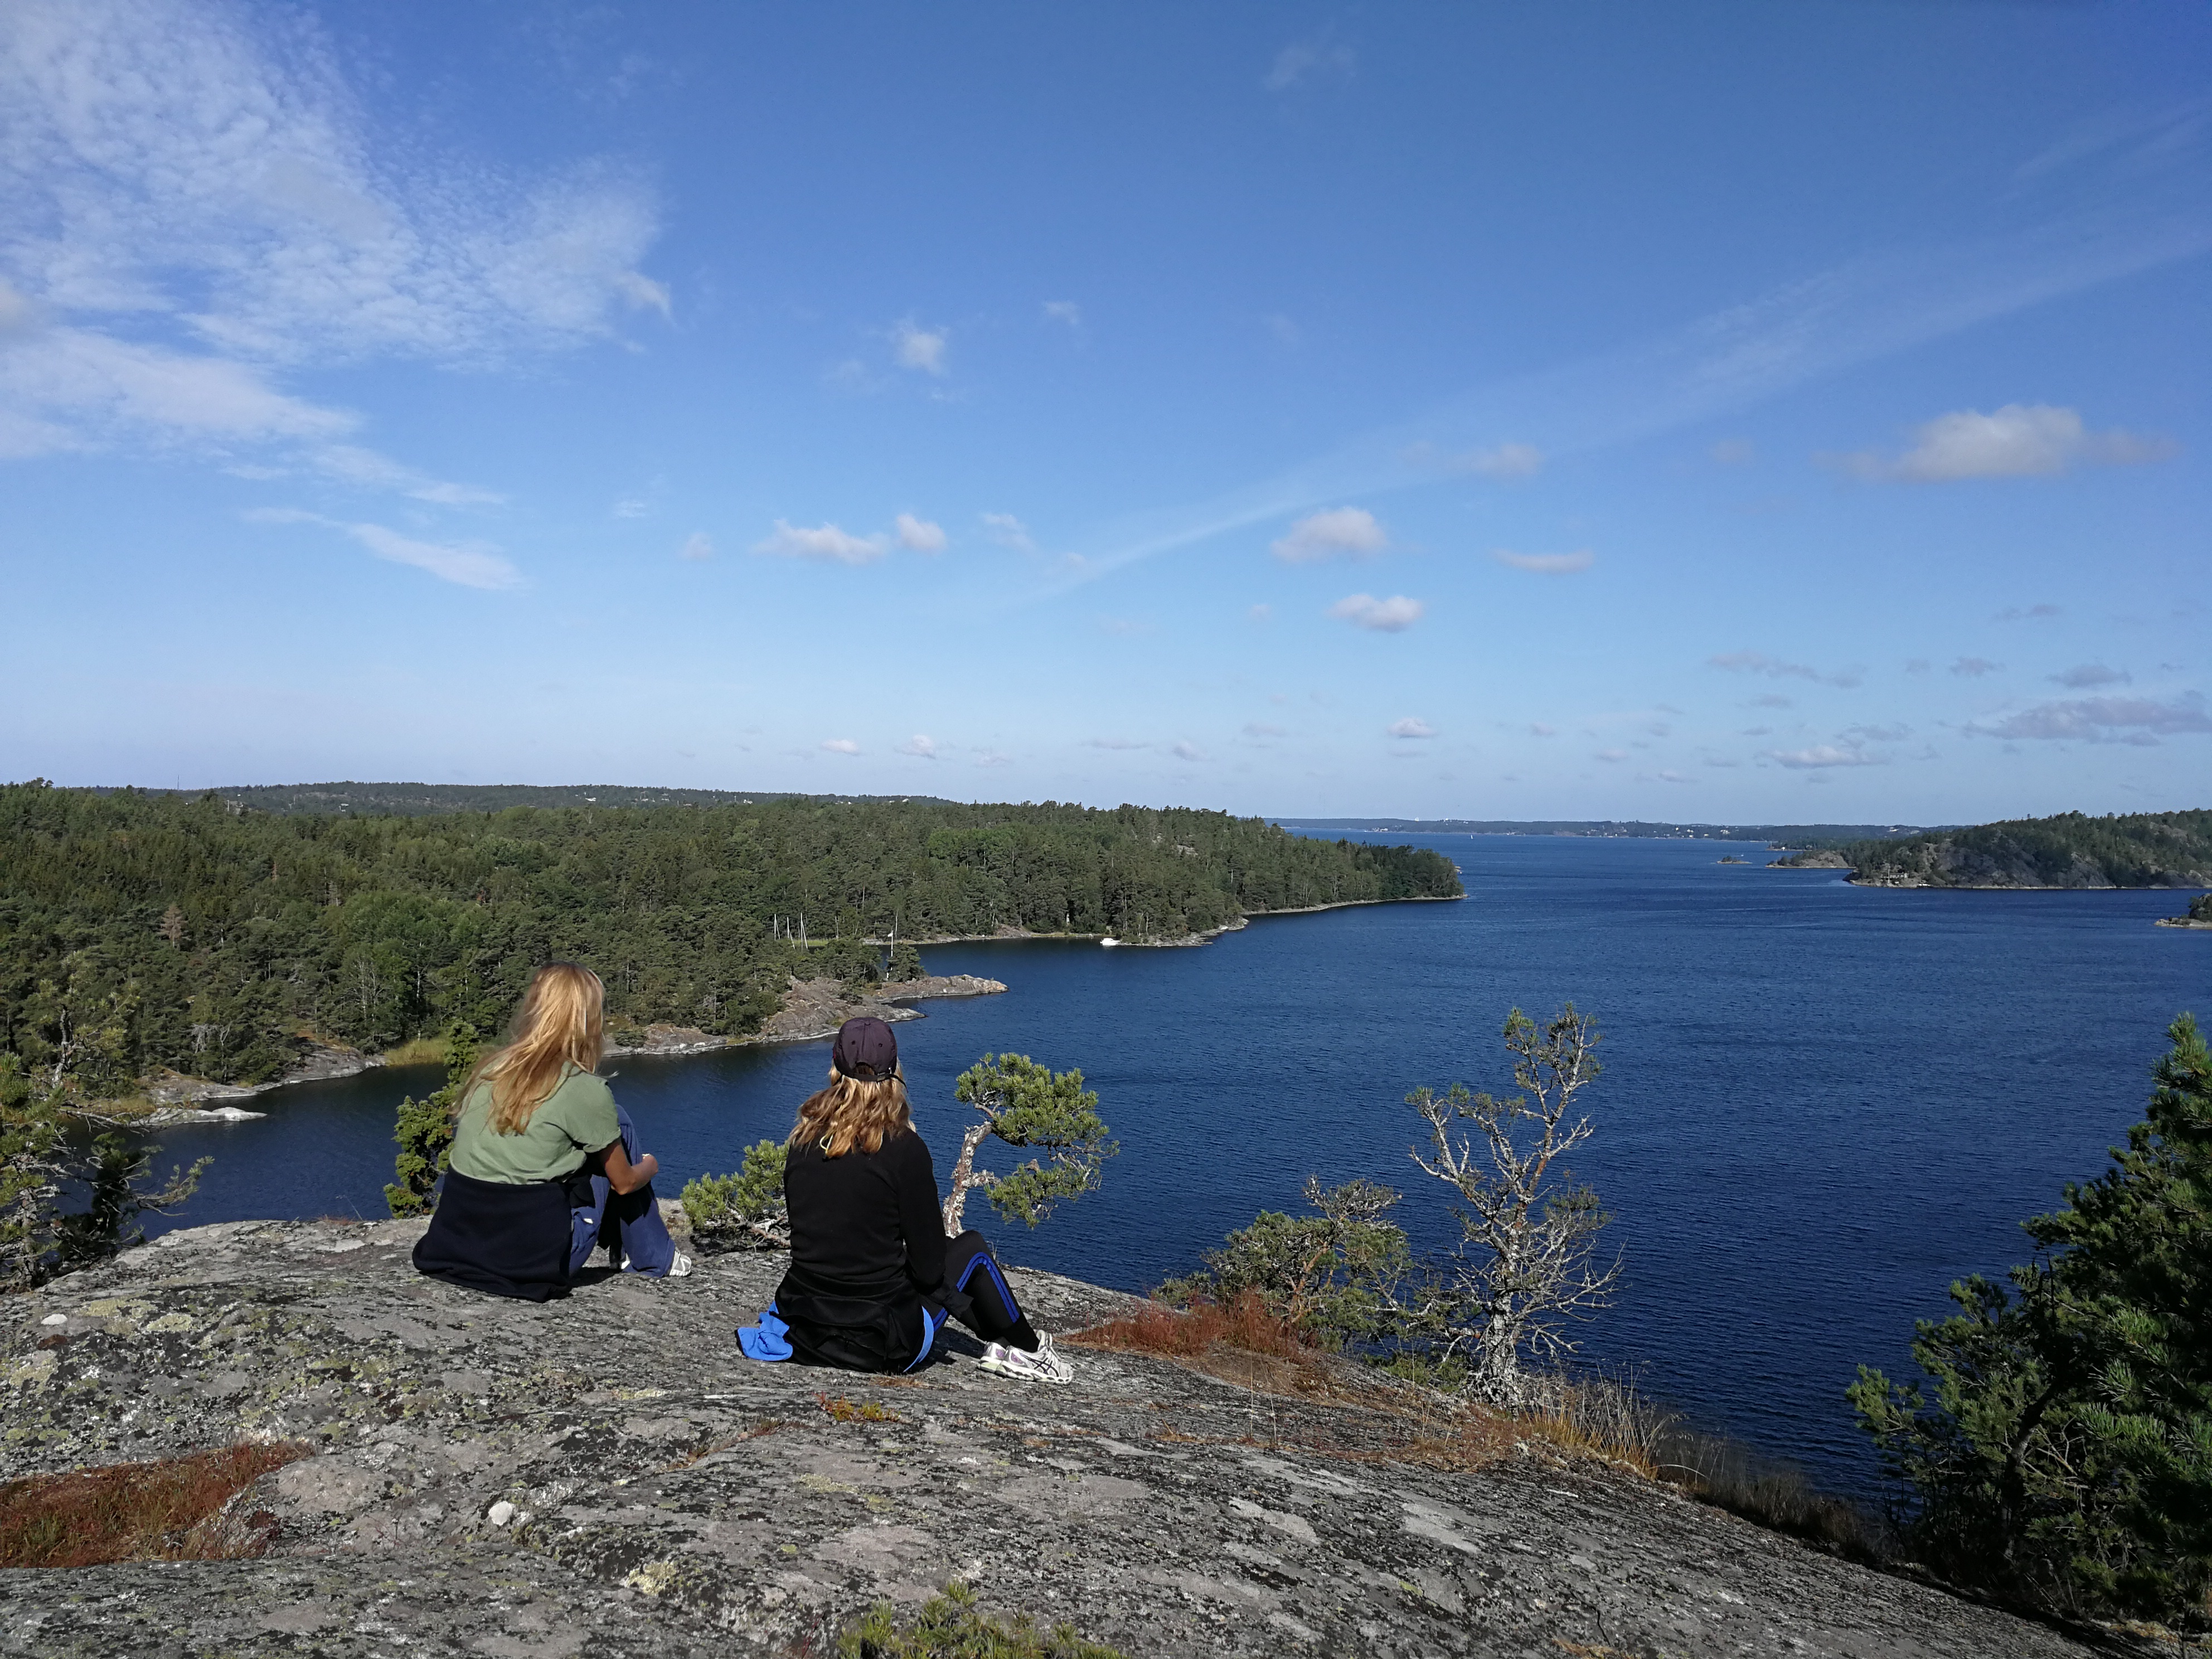 Early morning hikes on Swedish islands